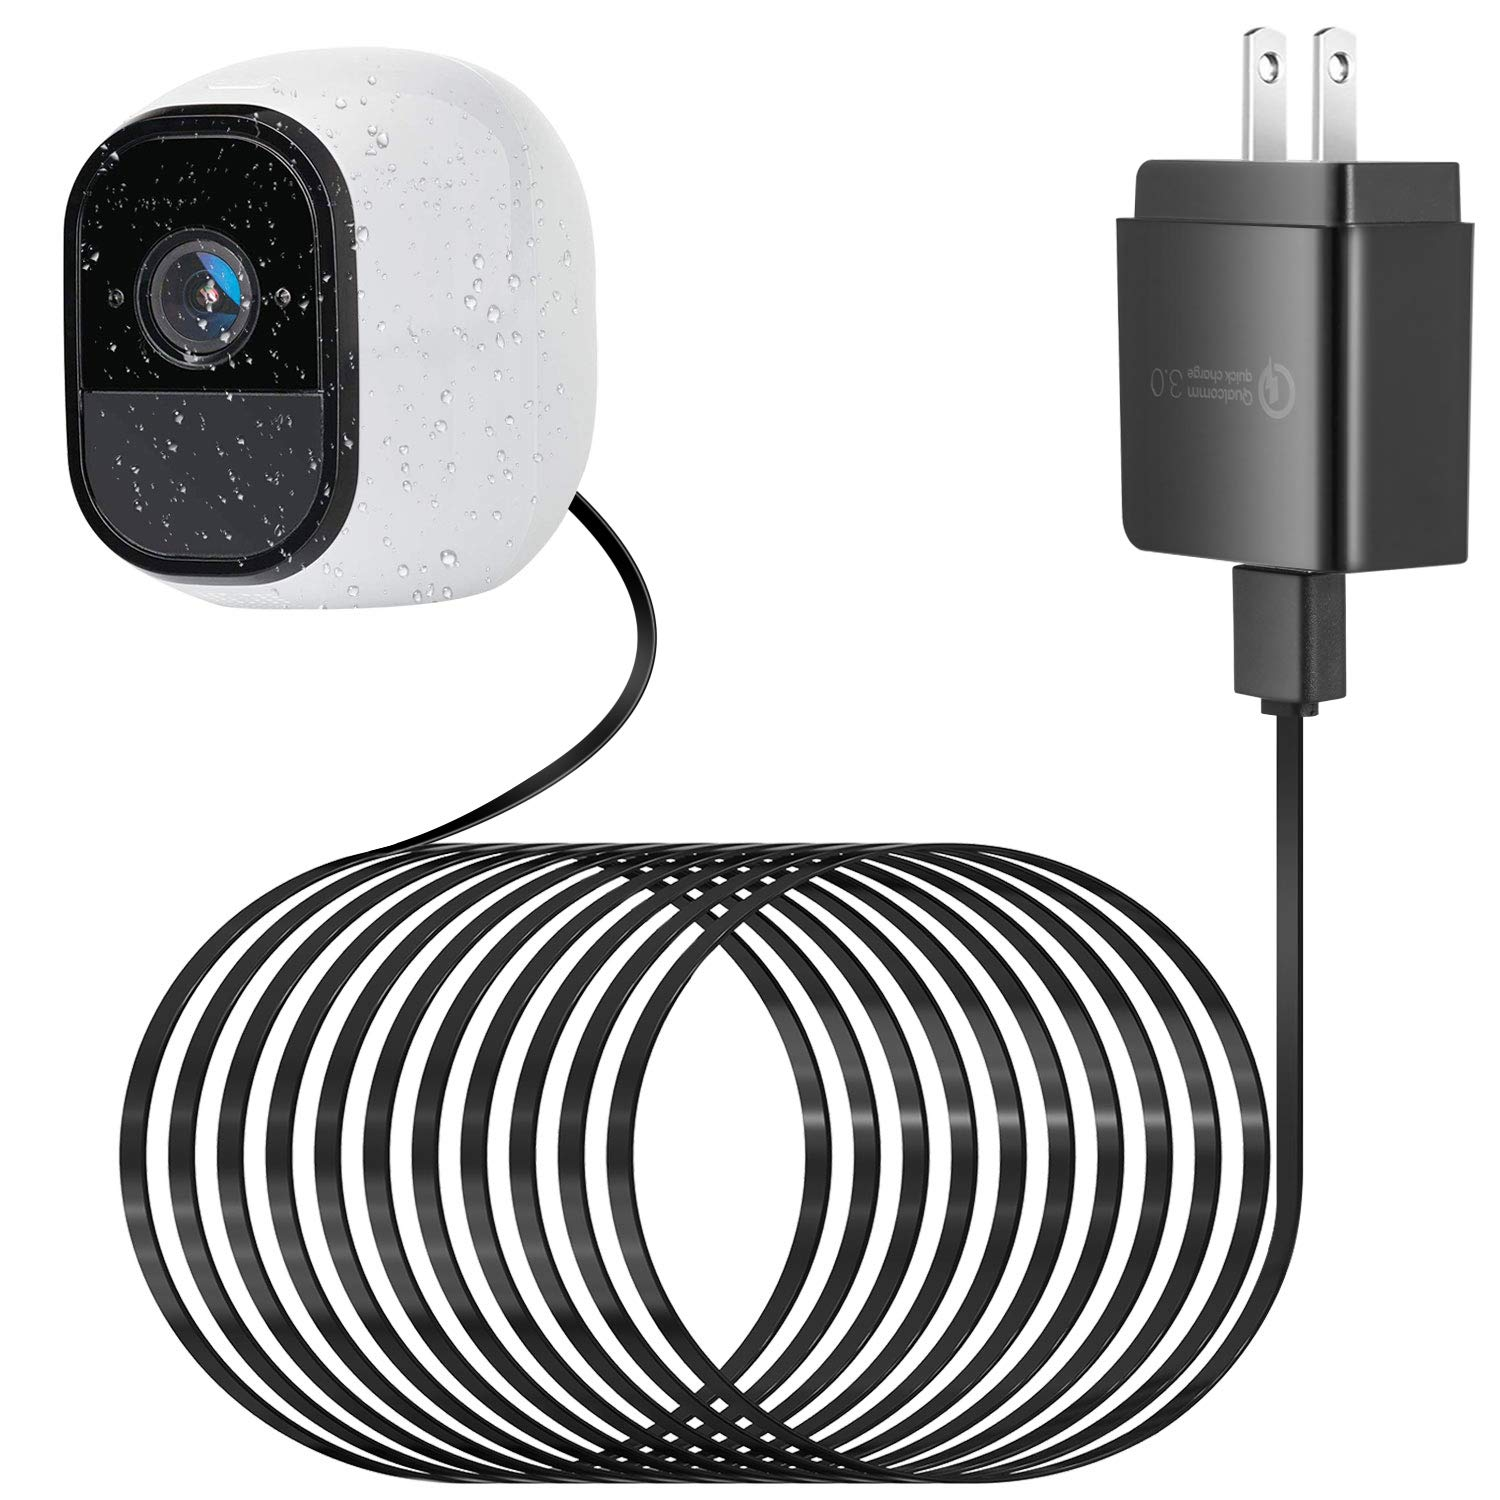 25Ft Charger Cable Weatherproof USB Cable for Arlo Pro and Arlo Pro 2 25ft Power Continuously Charging Cable 1 Pack